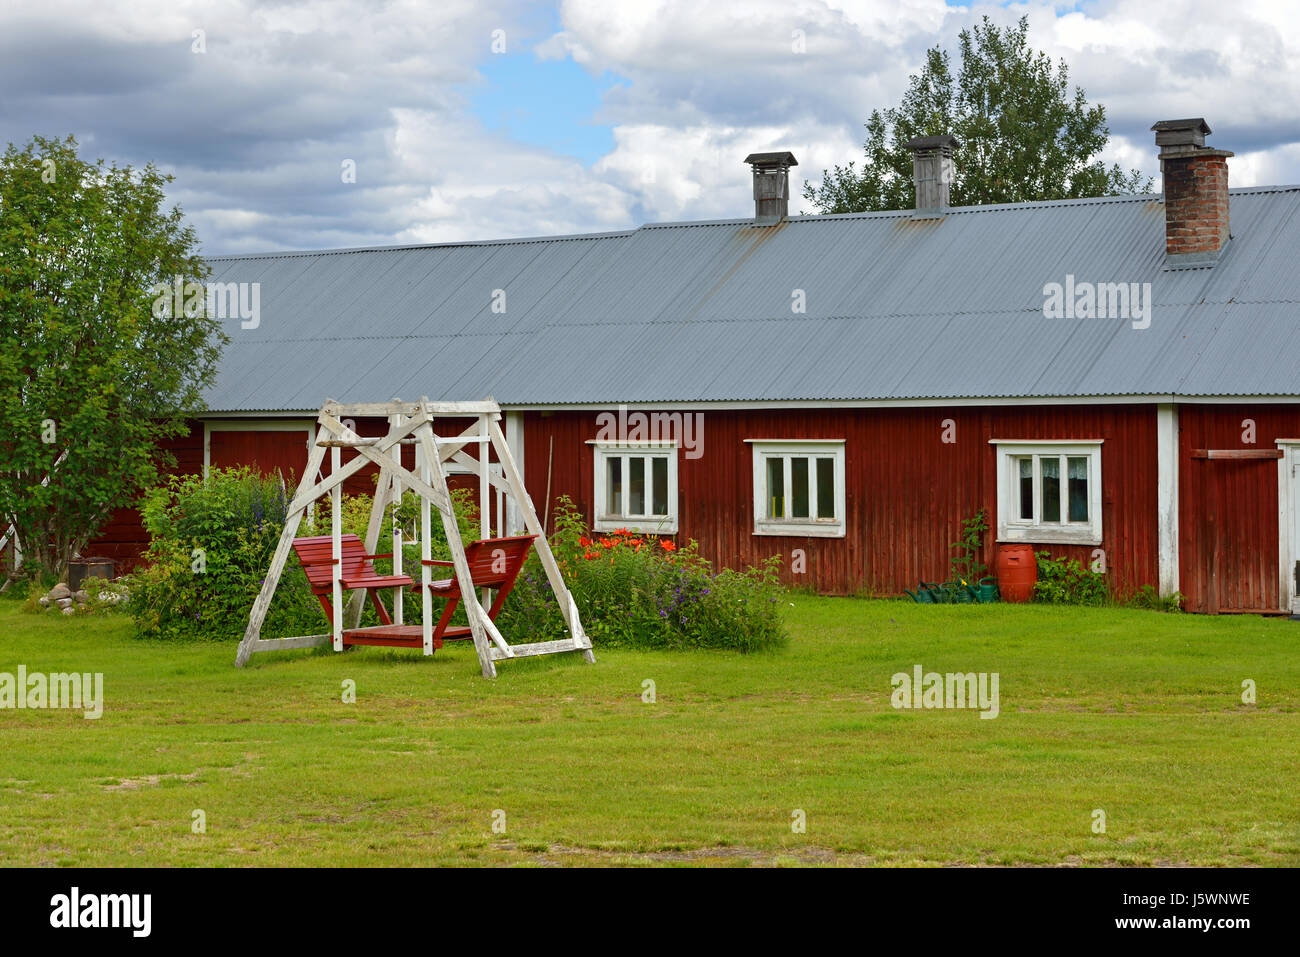 Traditional old rural house with swings. Finland, Lapland - Stock Image